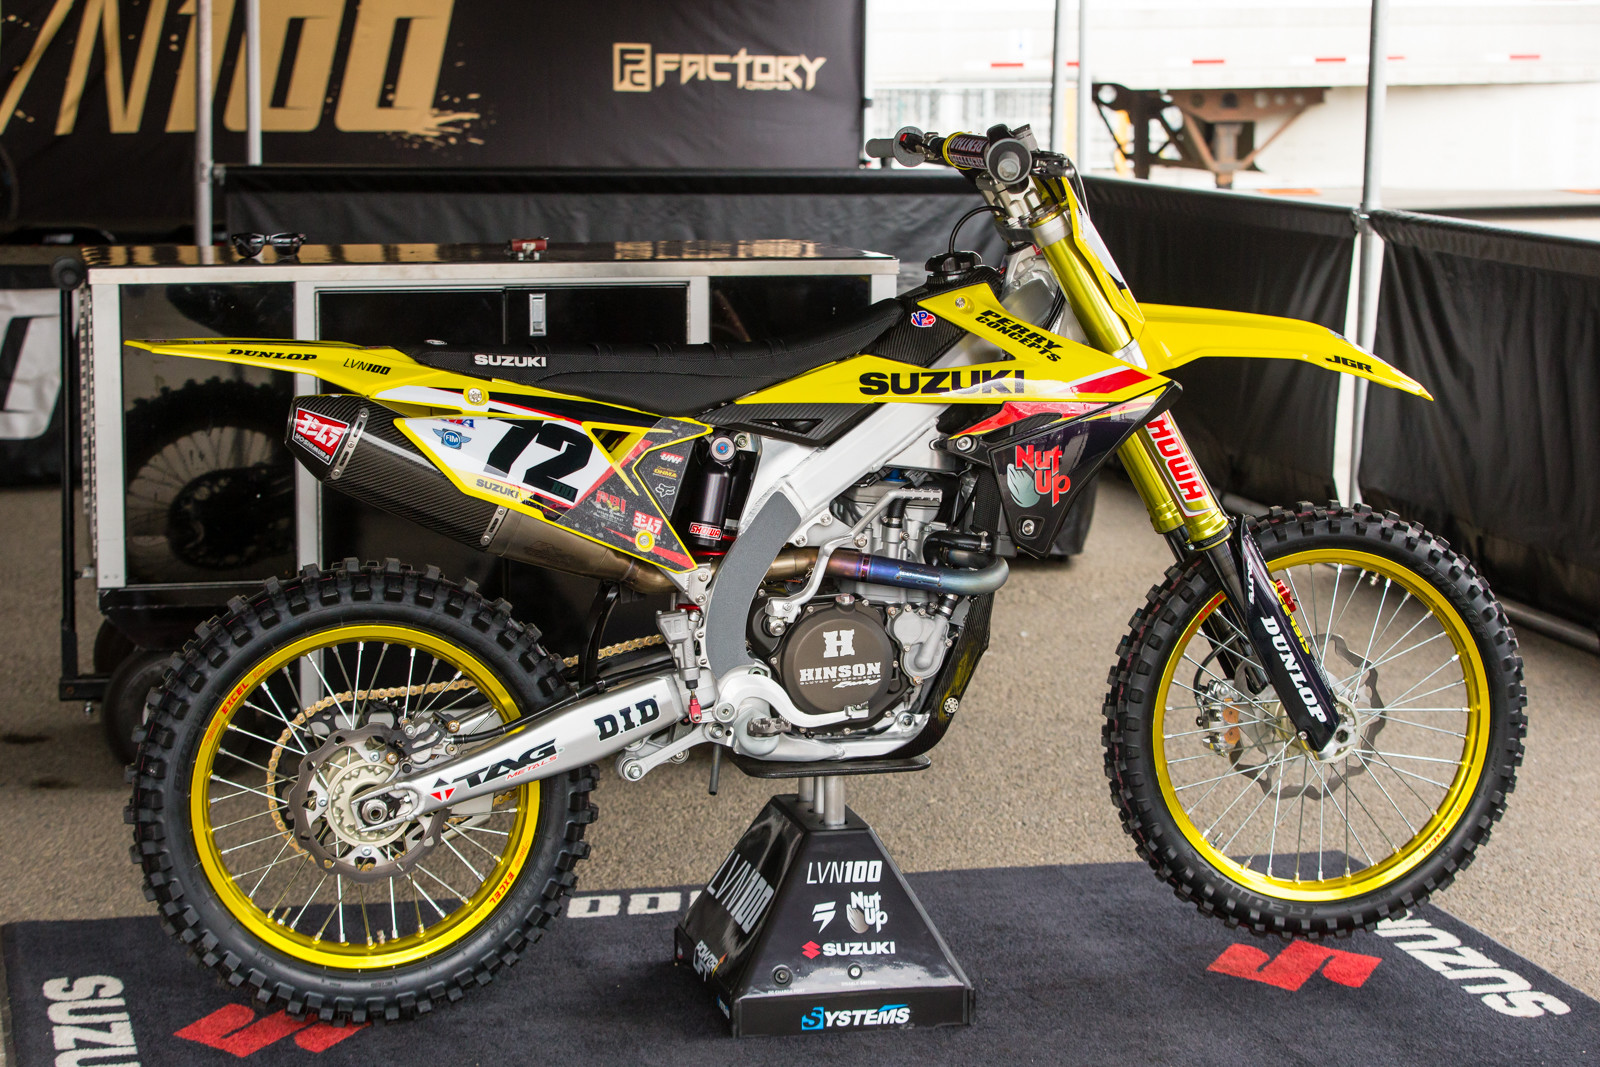 With Matt Bisceglia out injured, Josh Hansen's bike was alone under the LVN100 tent.